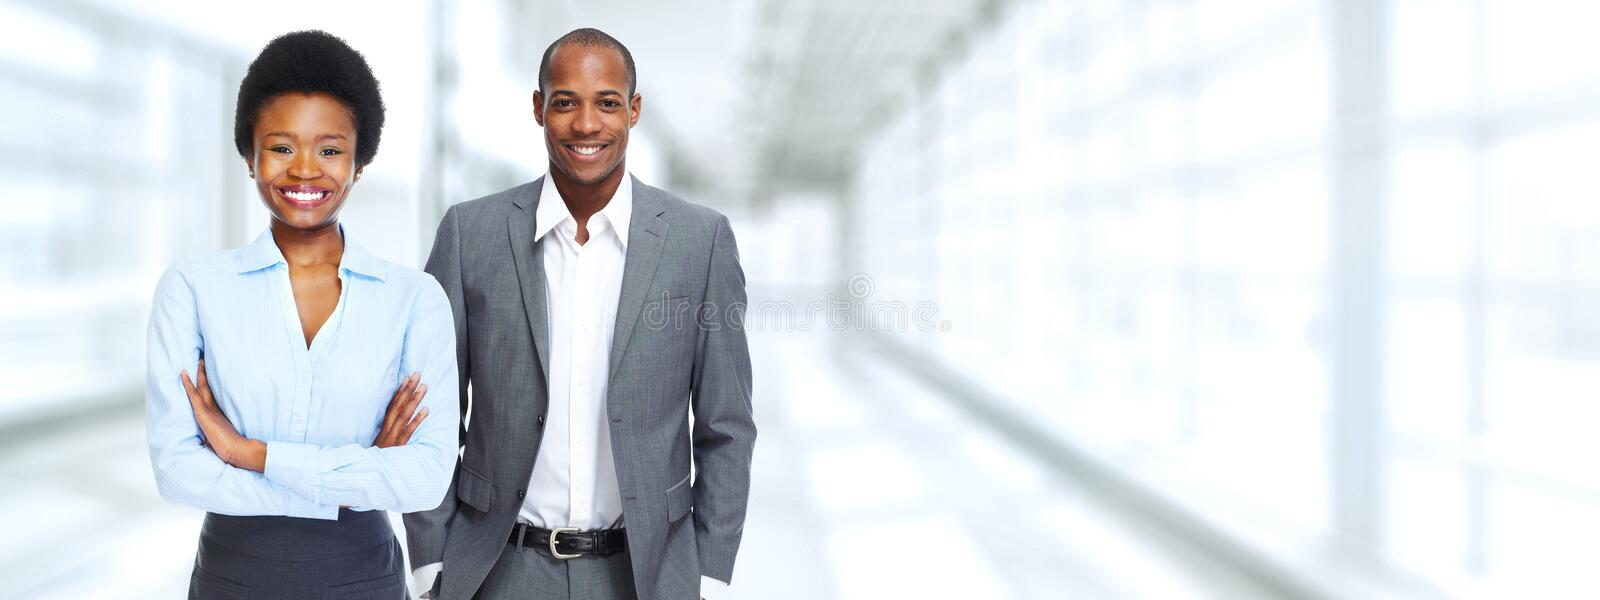 Business people group. royalty free stock images